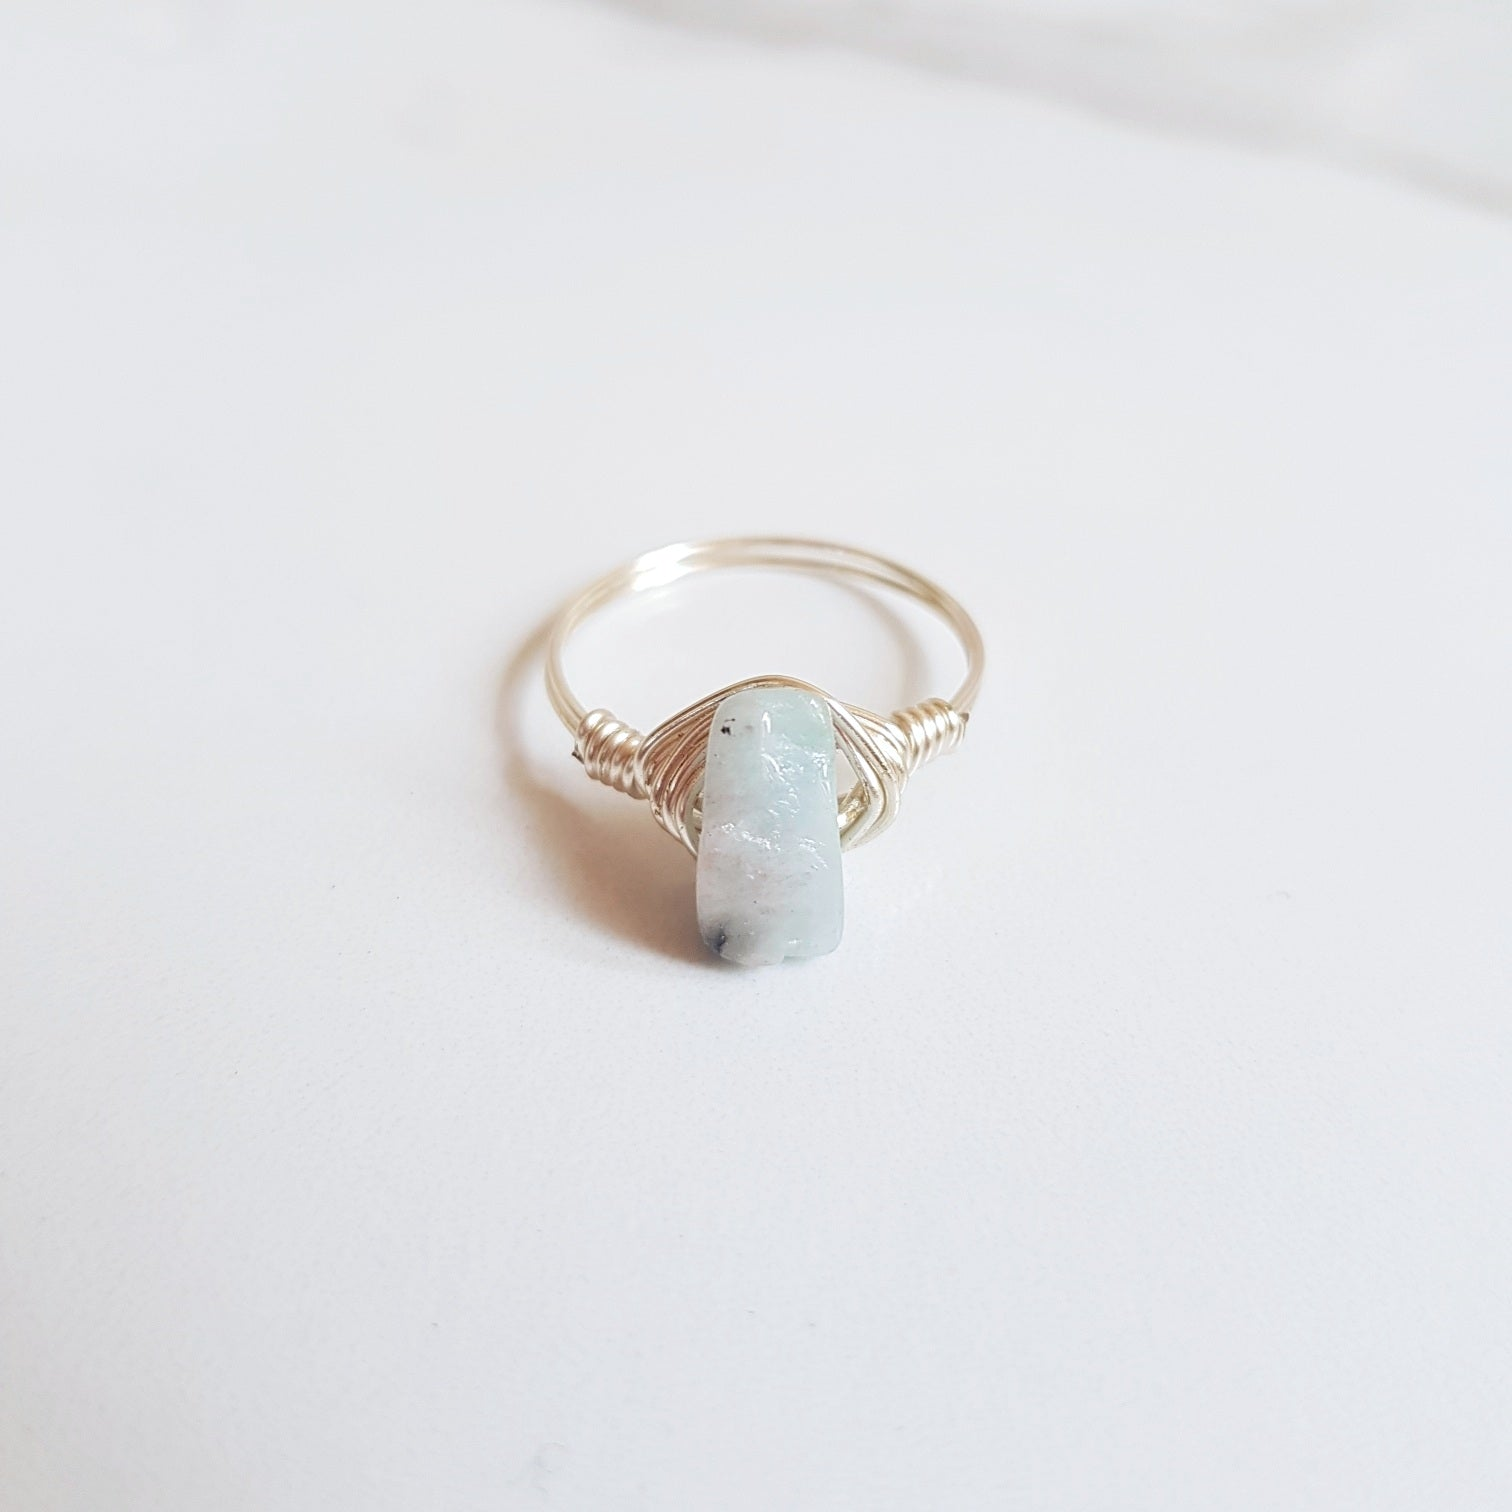 Tranquil Ring- Aquamarine